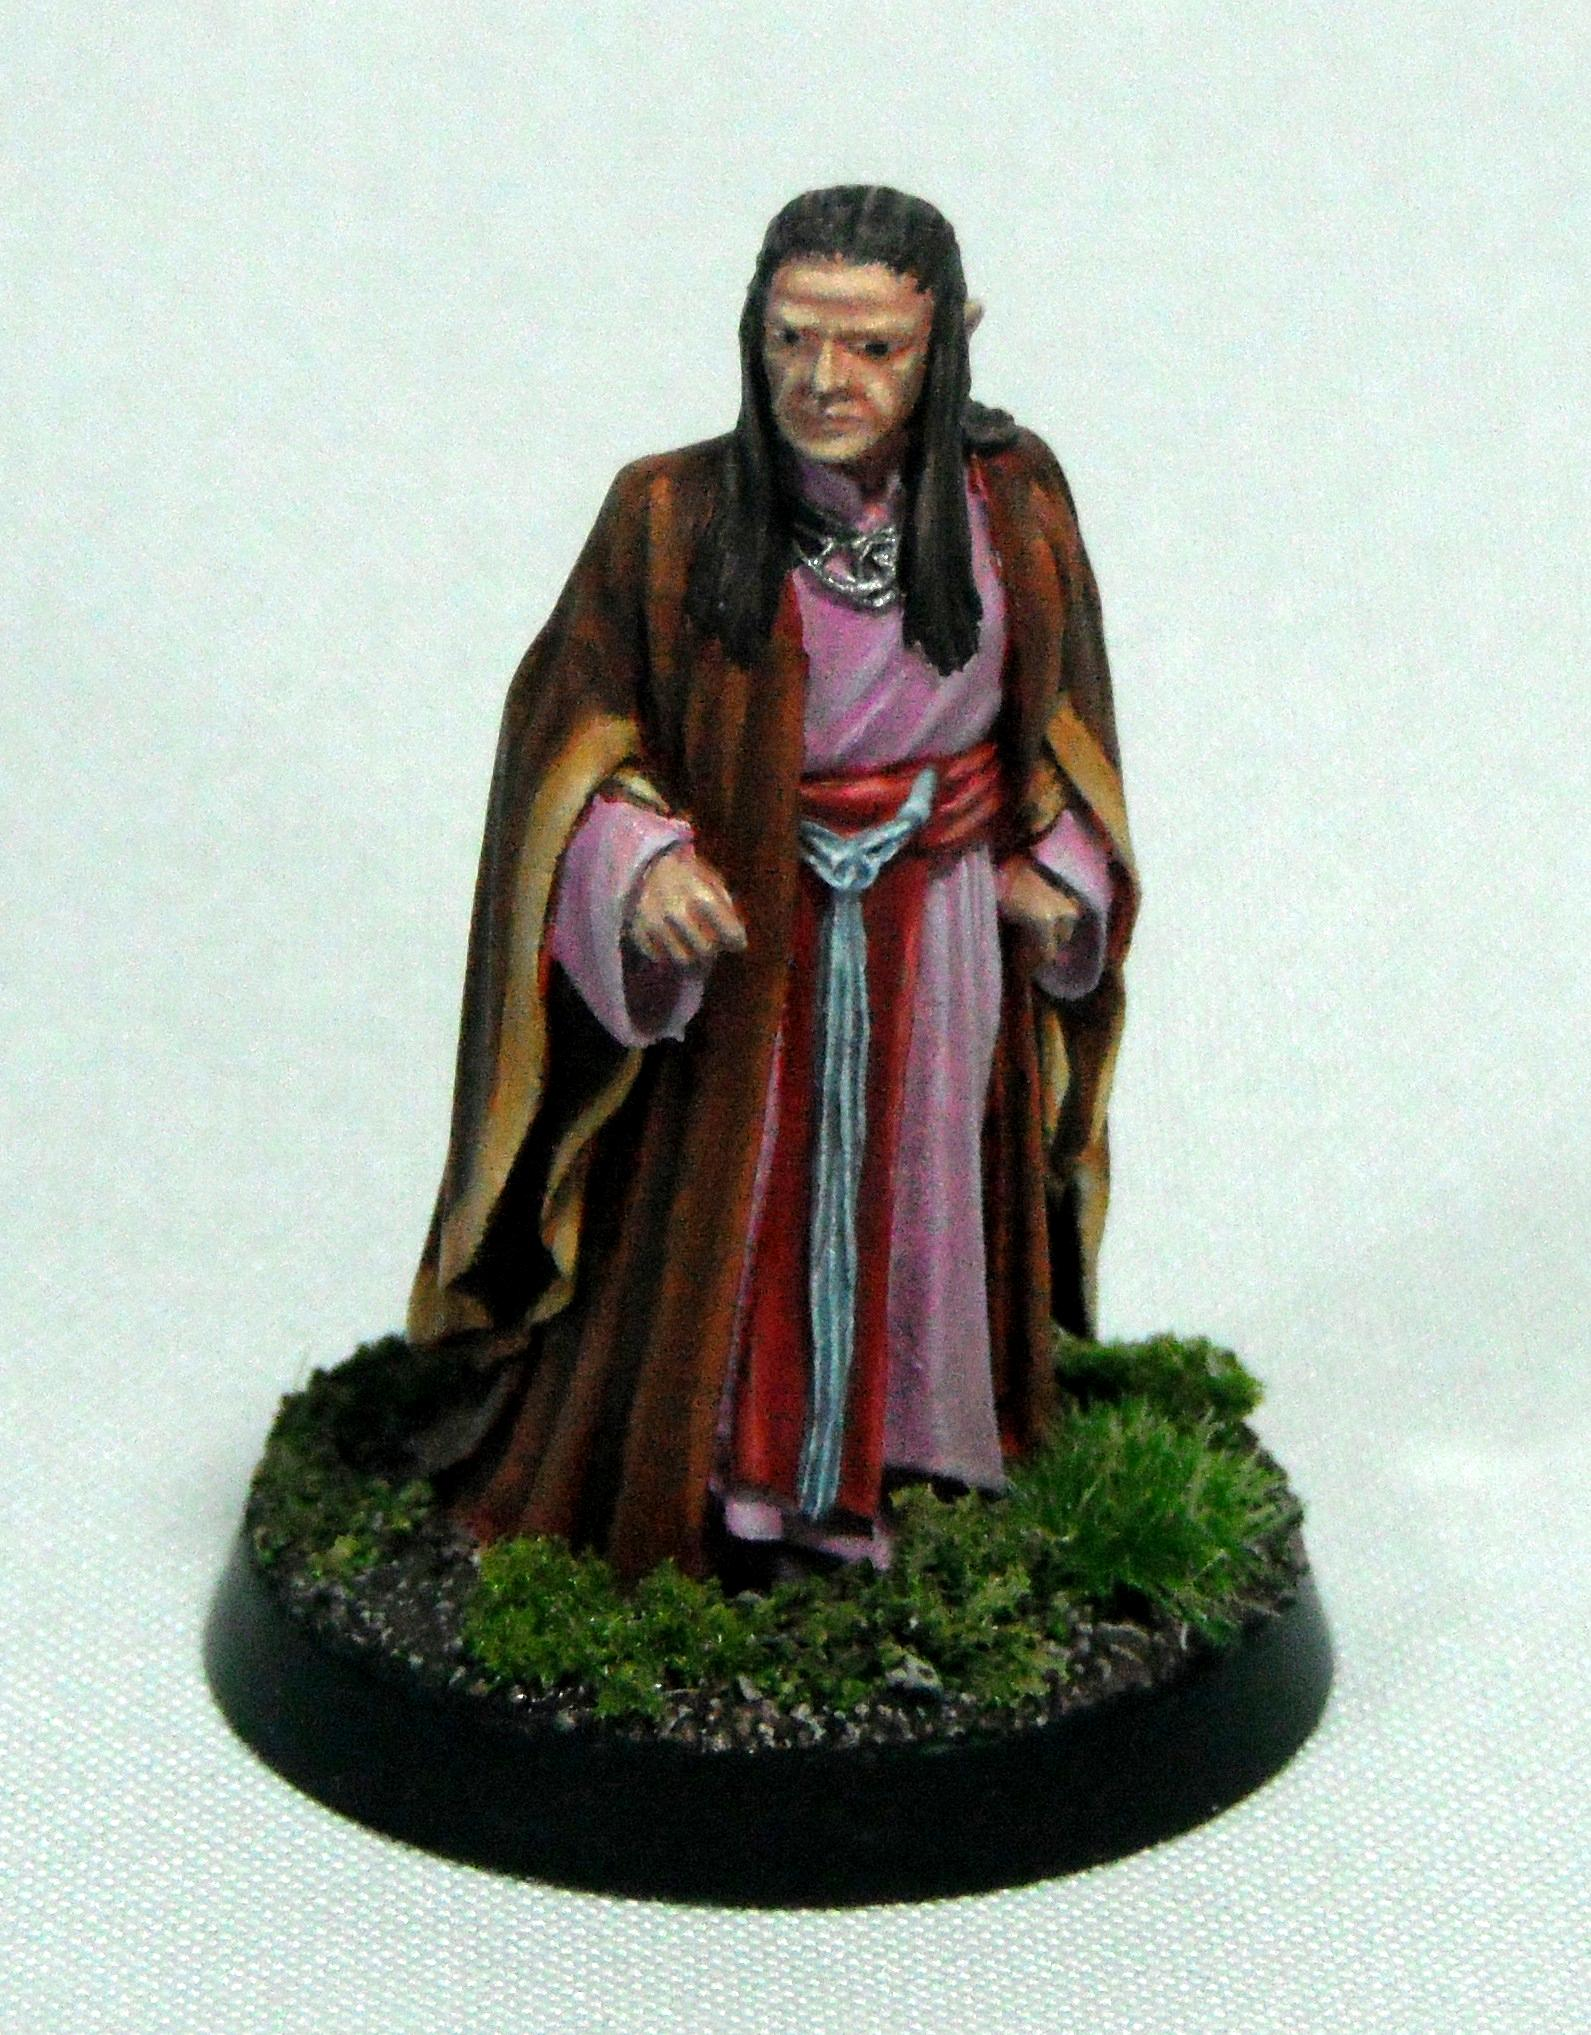 Elrond, Lord Of The Rings, The Hobbit, White Council